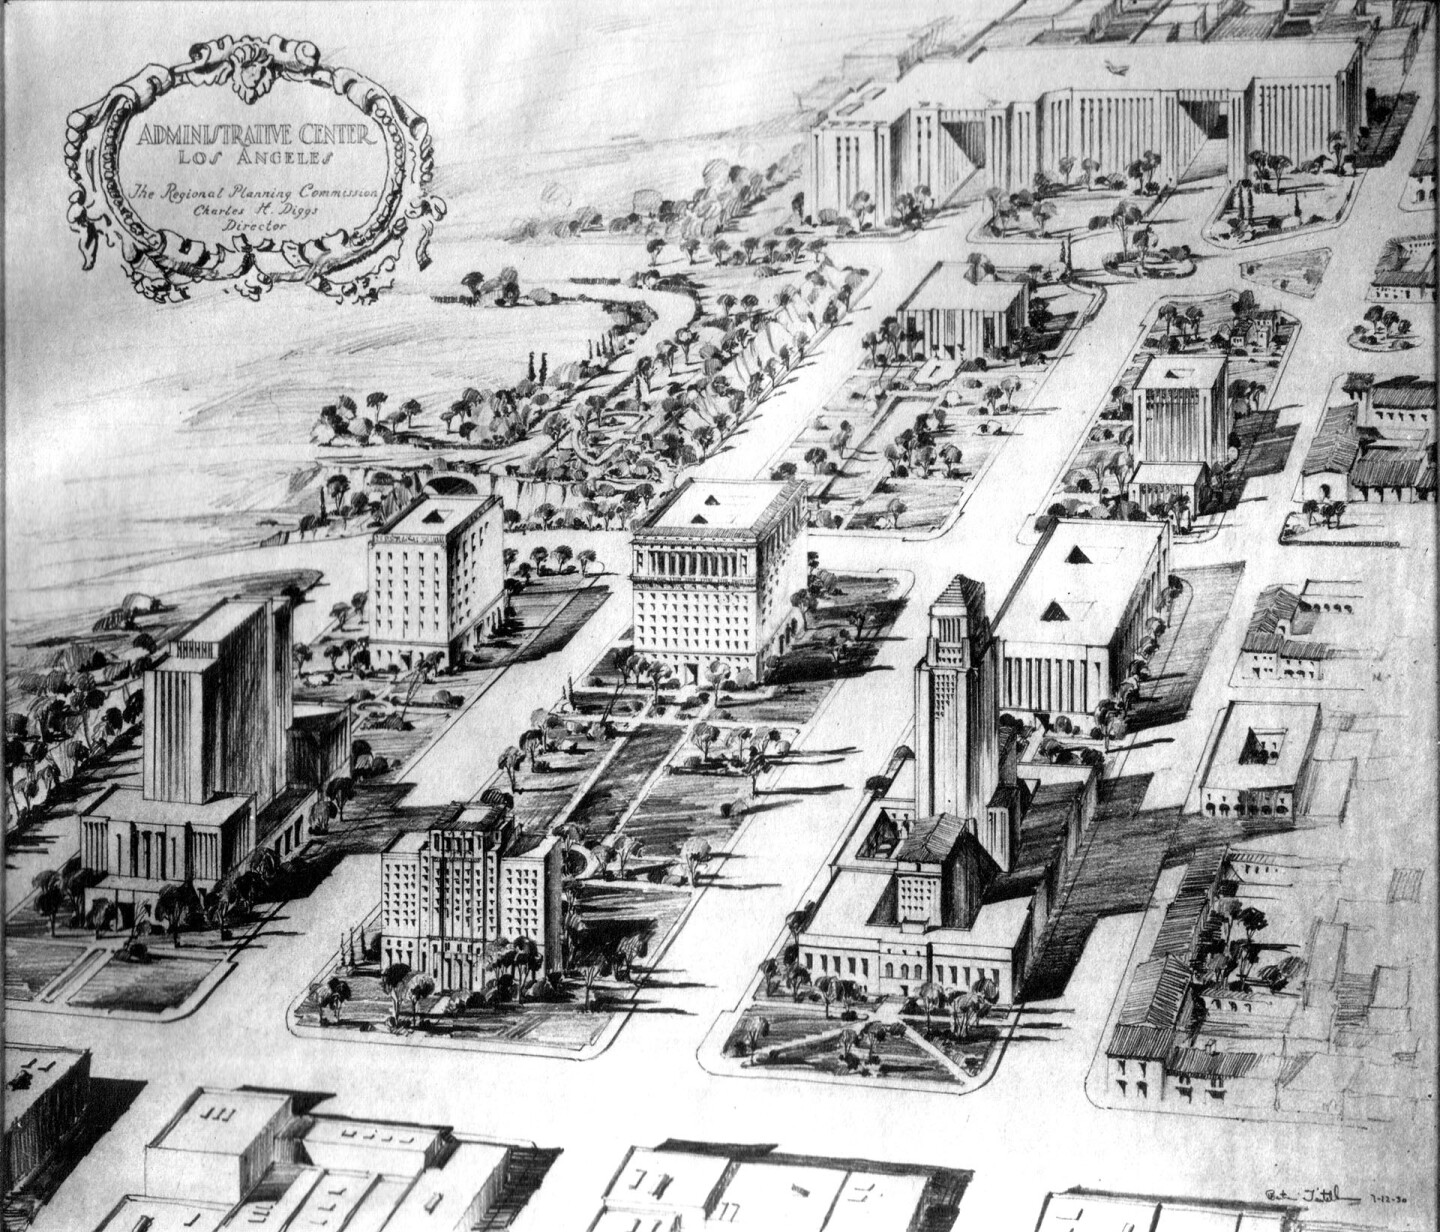 Administrative Center plan, 1927, perspective drawing